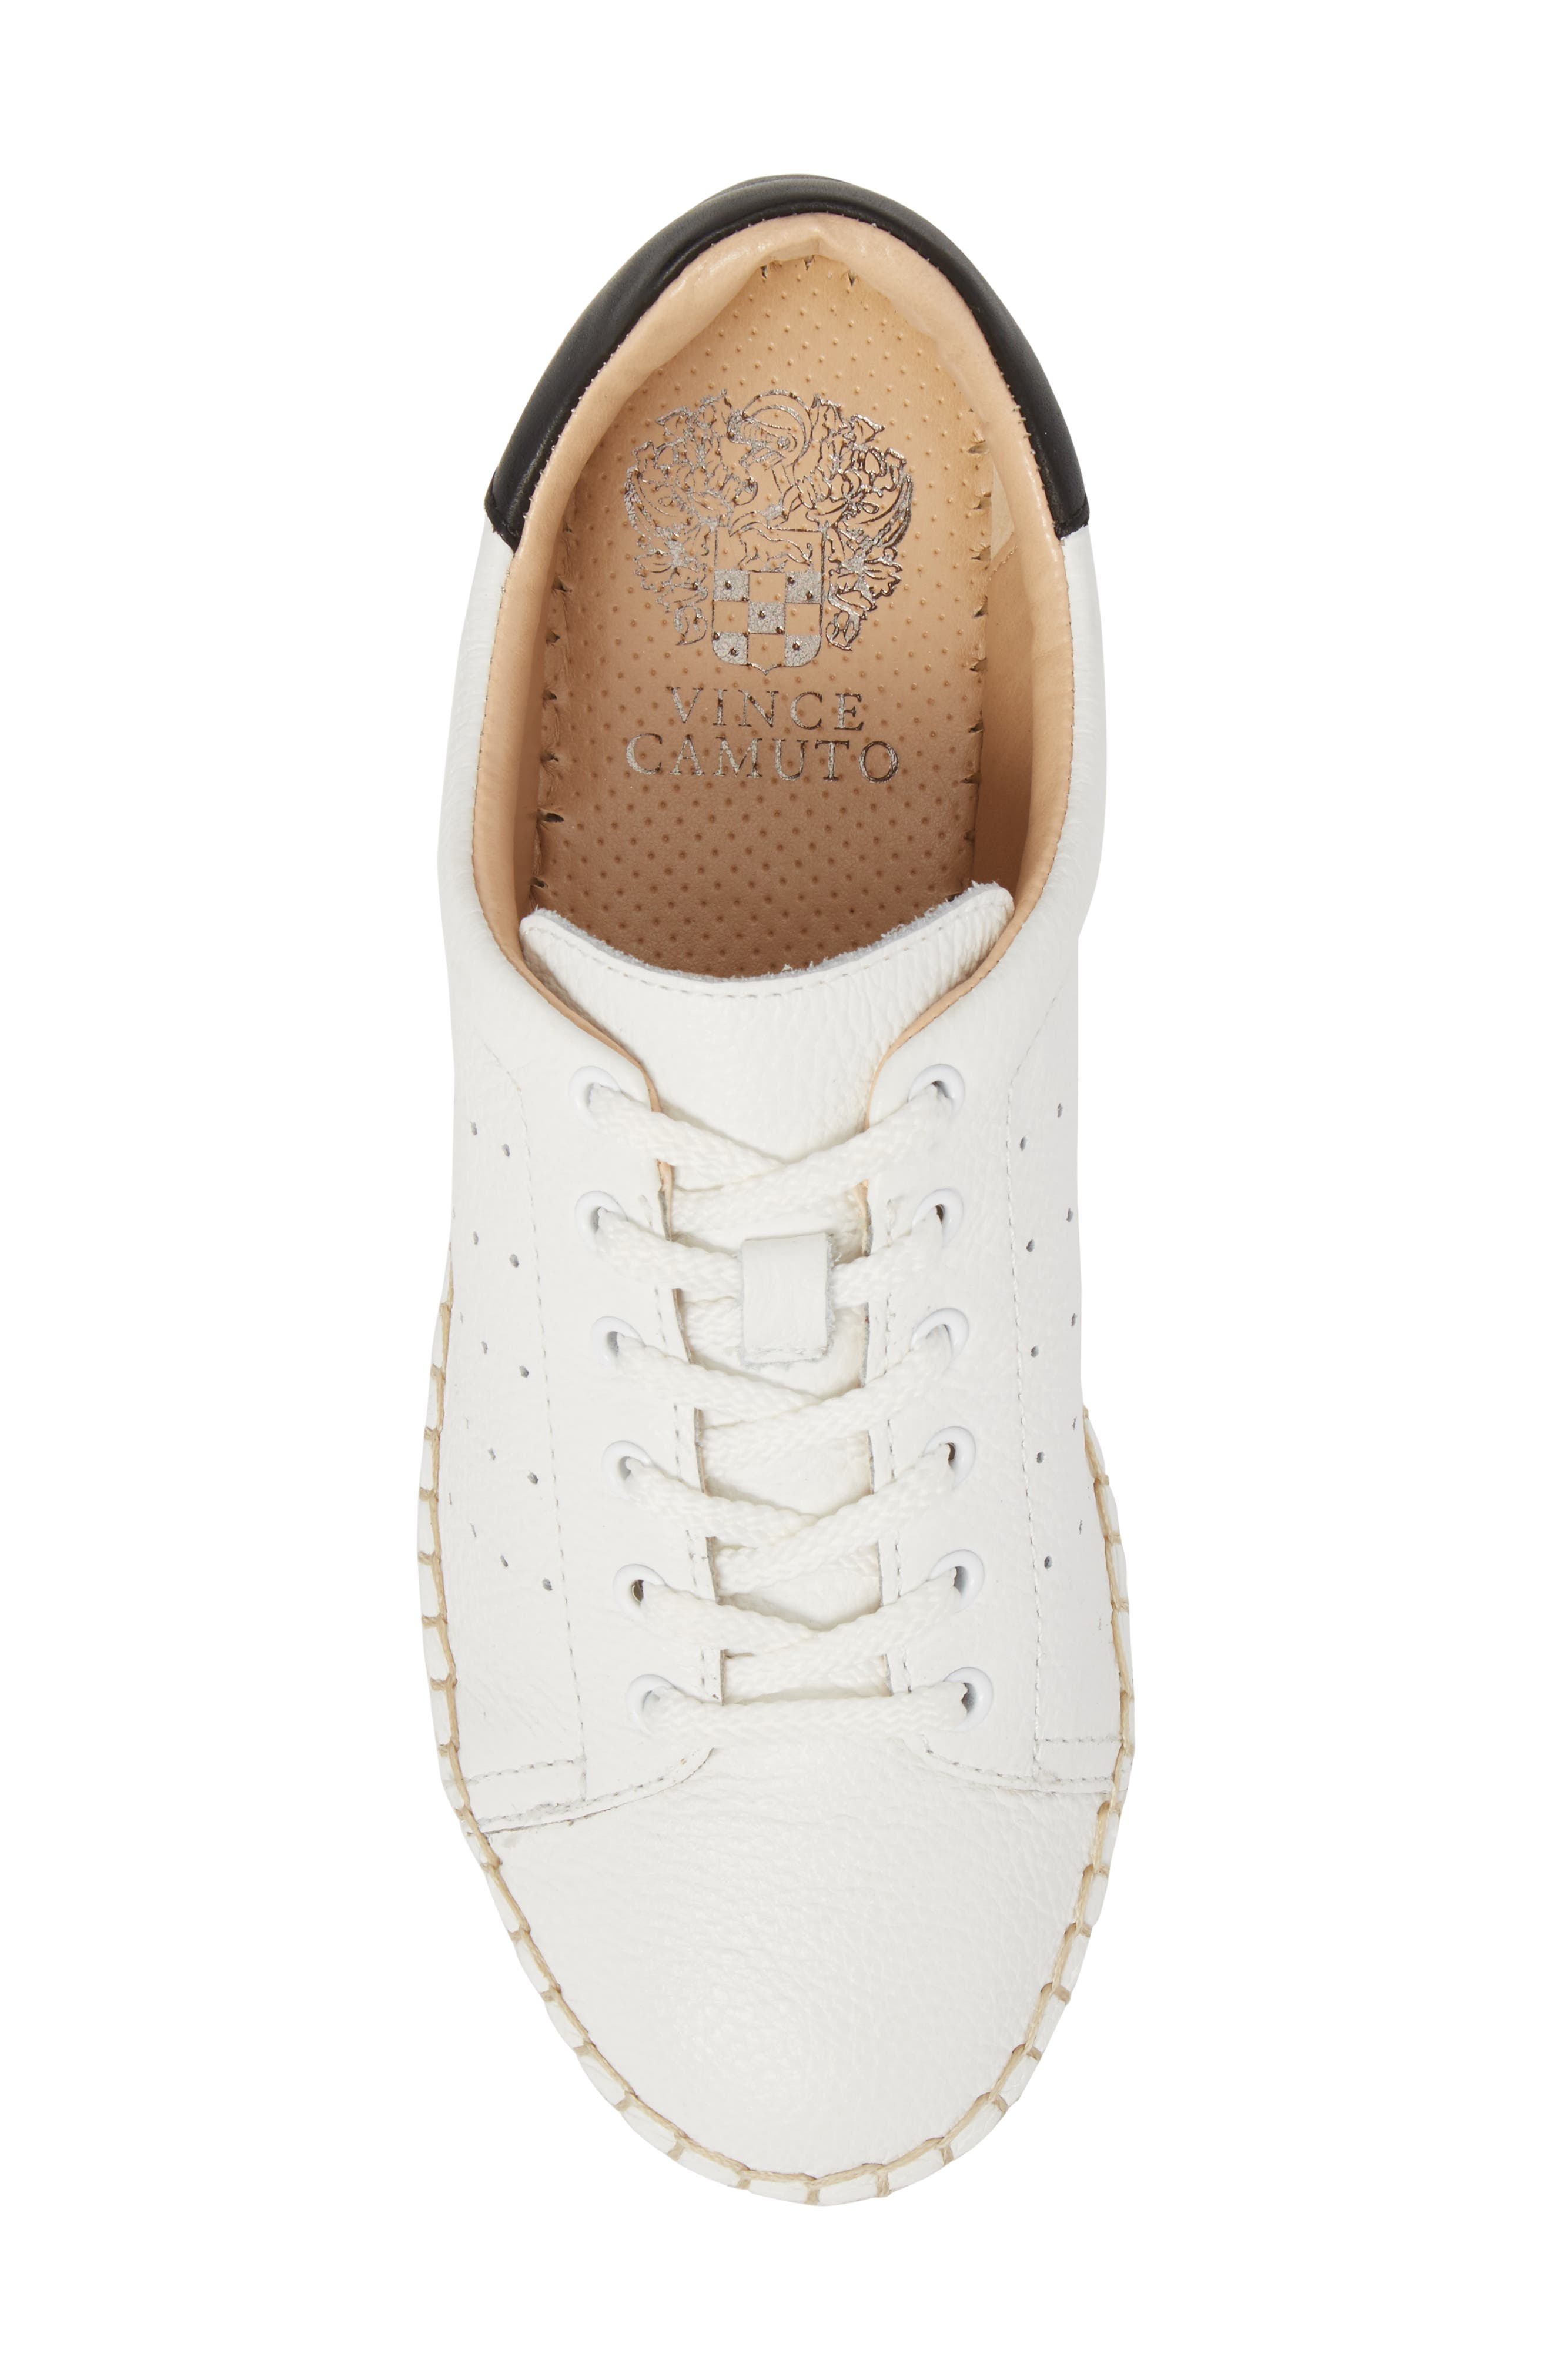 Jinnie Espadrille Sneaker,                             Alternate thumbnail 5, color,                             Picket Fence